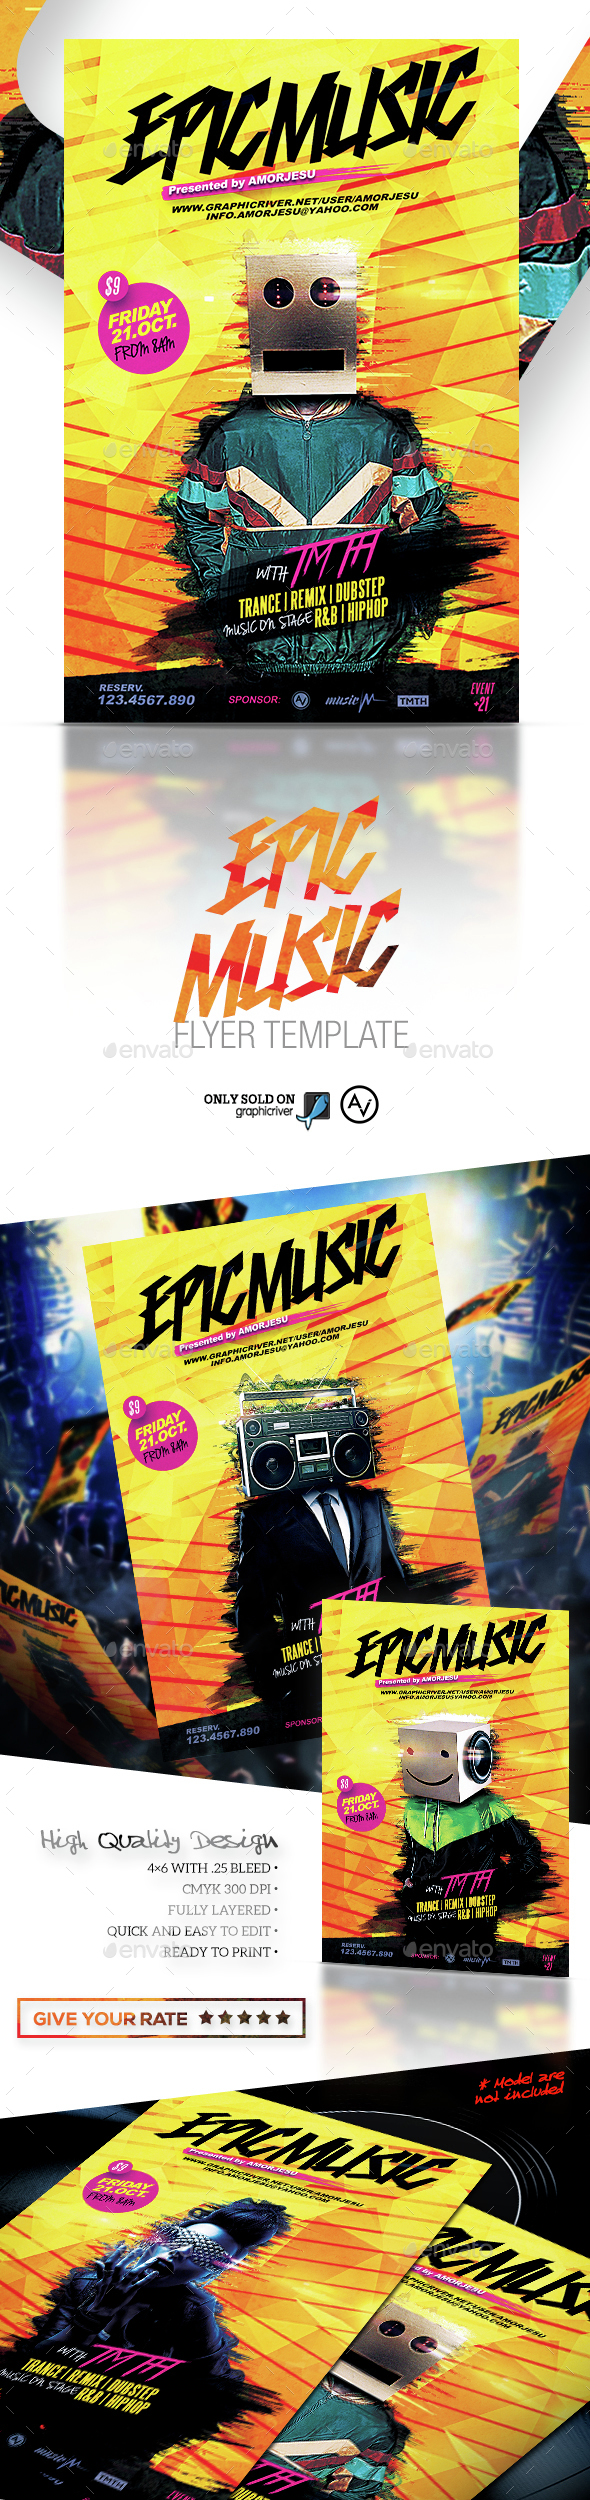 Epic Music Flyer Template - Clubs & Parties Events